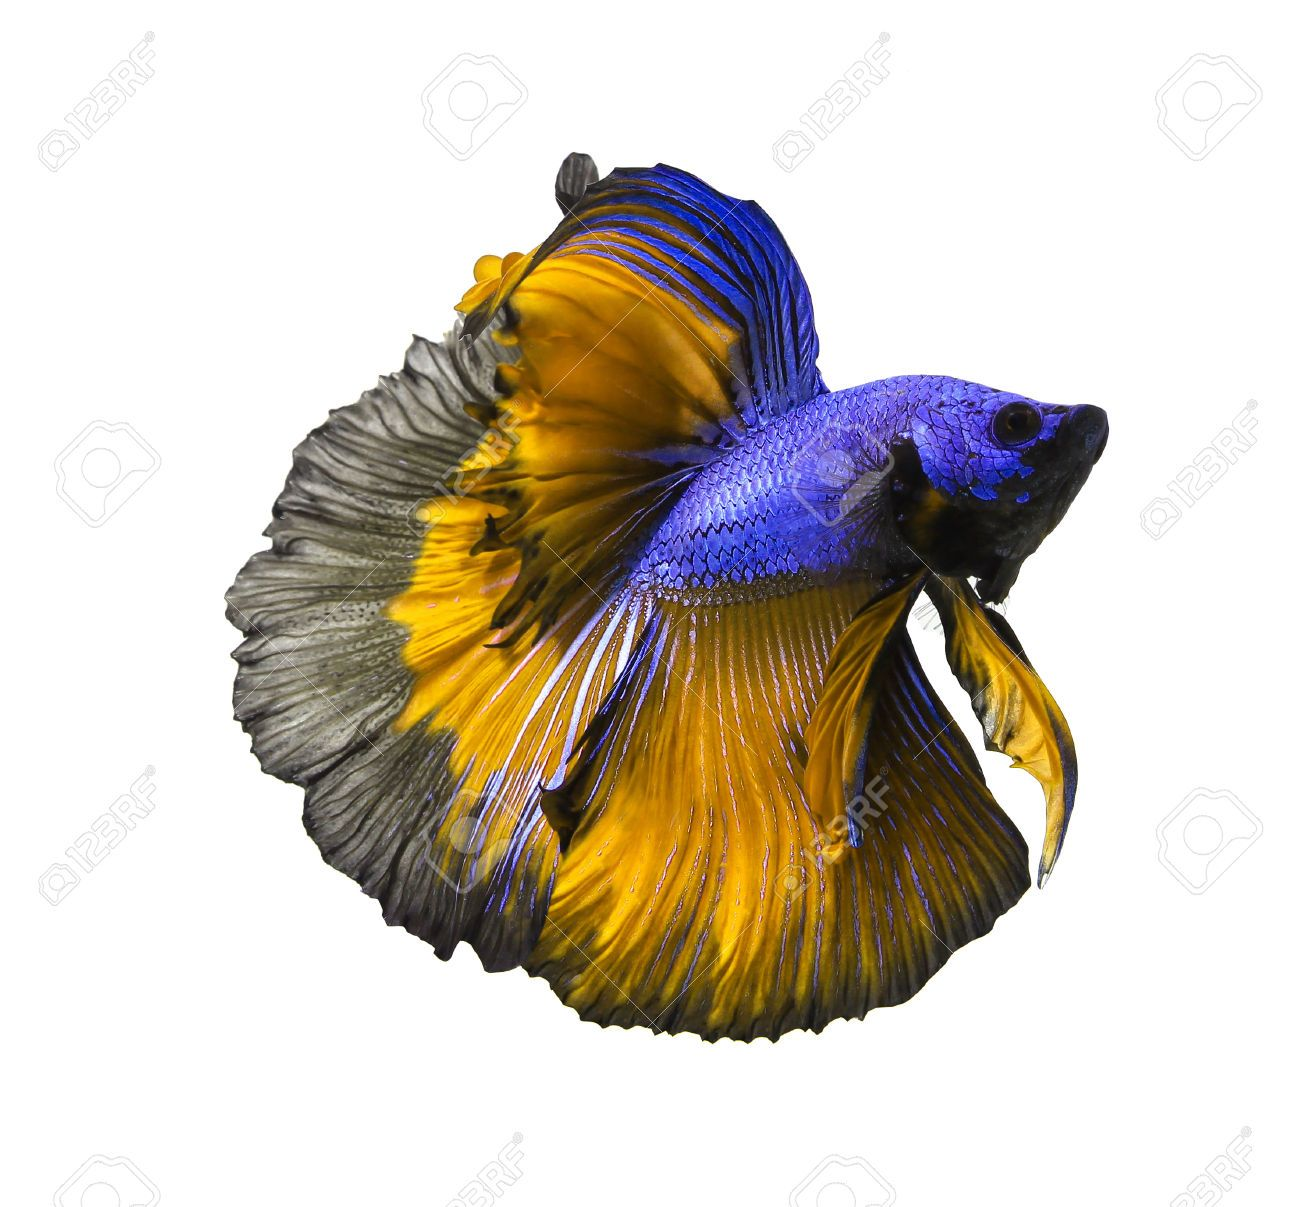 Siamese Fighting Fish Betta Isolated On White Background Siamese Fighting Fish Betta White Background